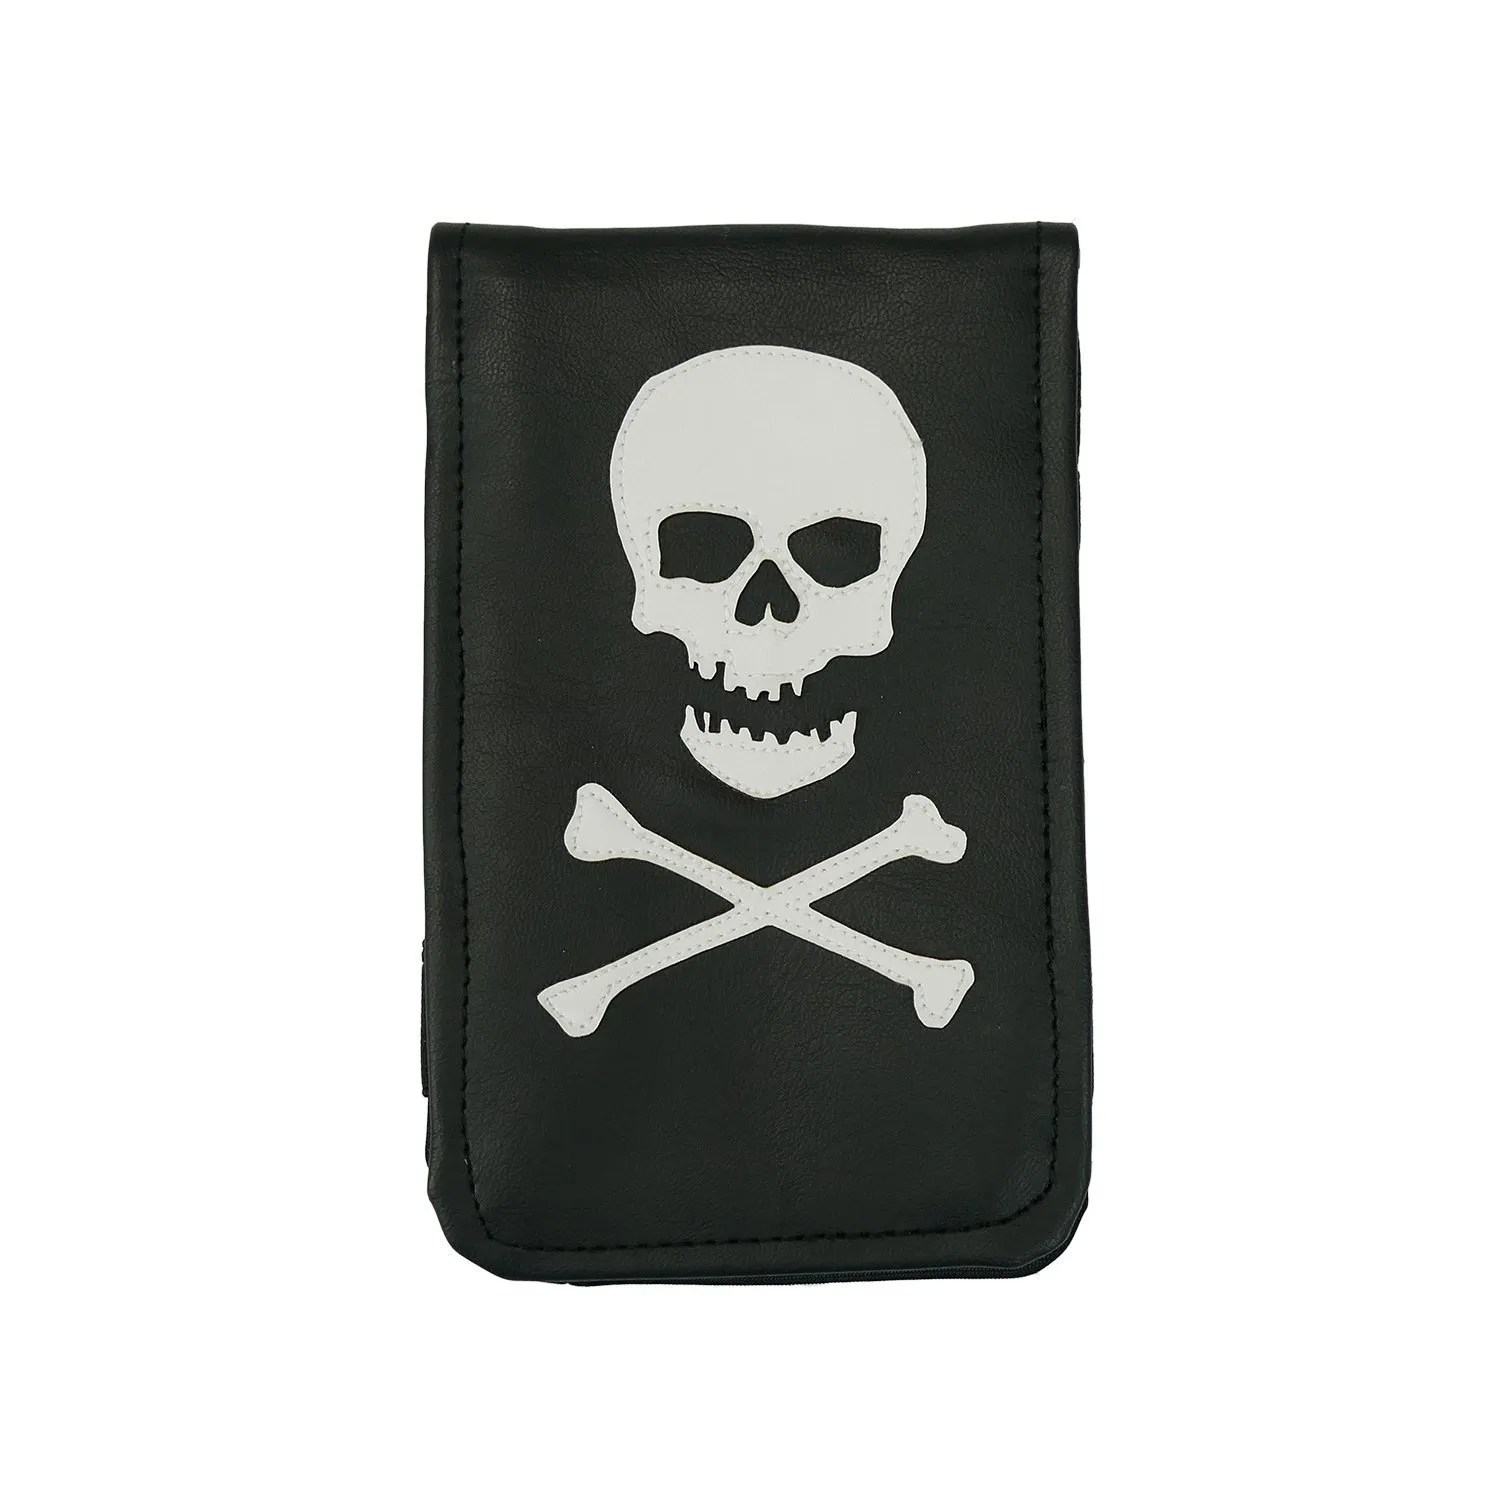 Skull And Crossbones Scorecard Yardage Book Holder Sunfish